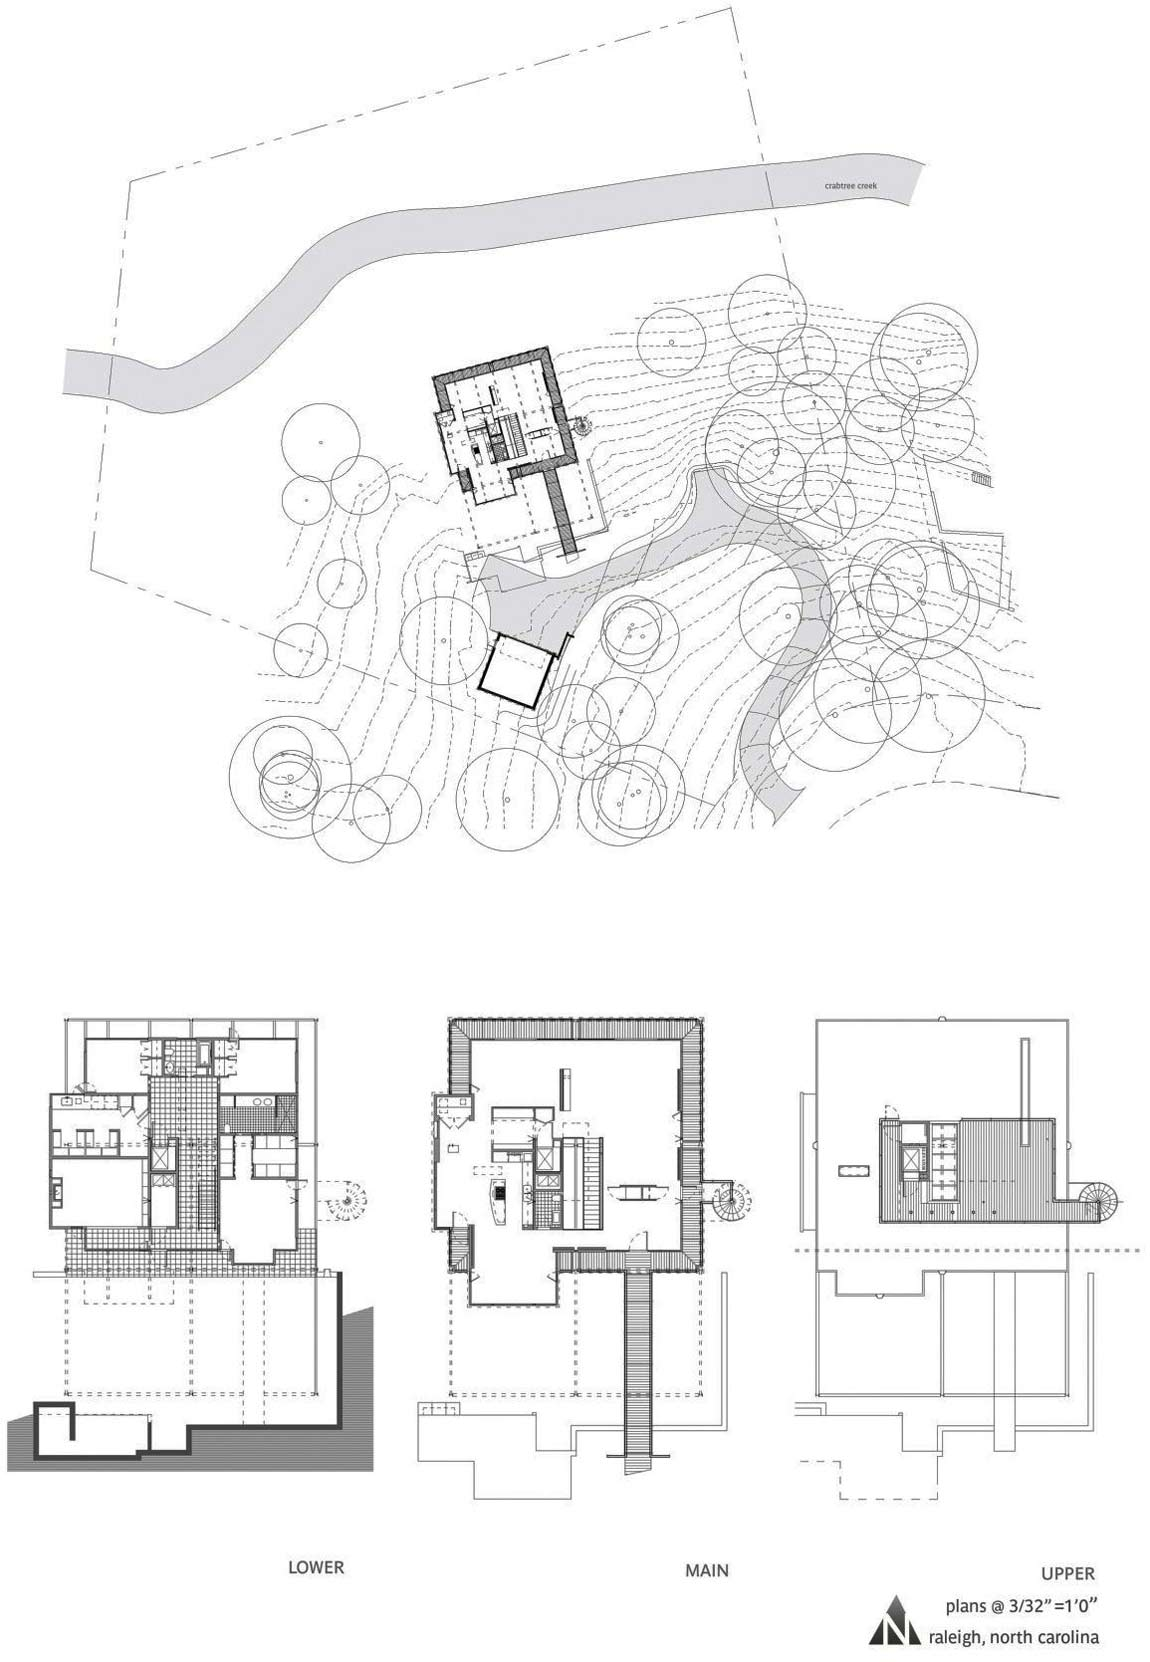 Floor Plans, Chiles Residence in Raleigh, North Carolina by Tonic Design + Construction